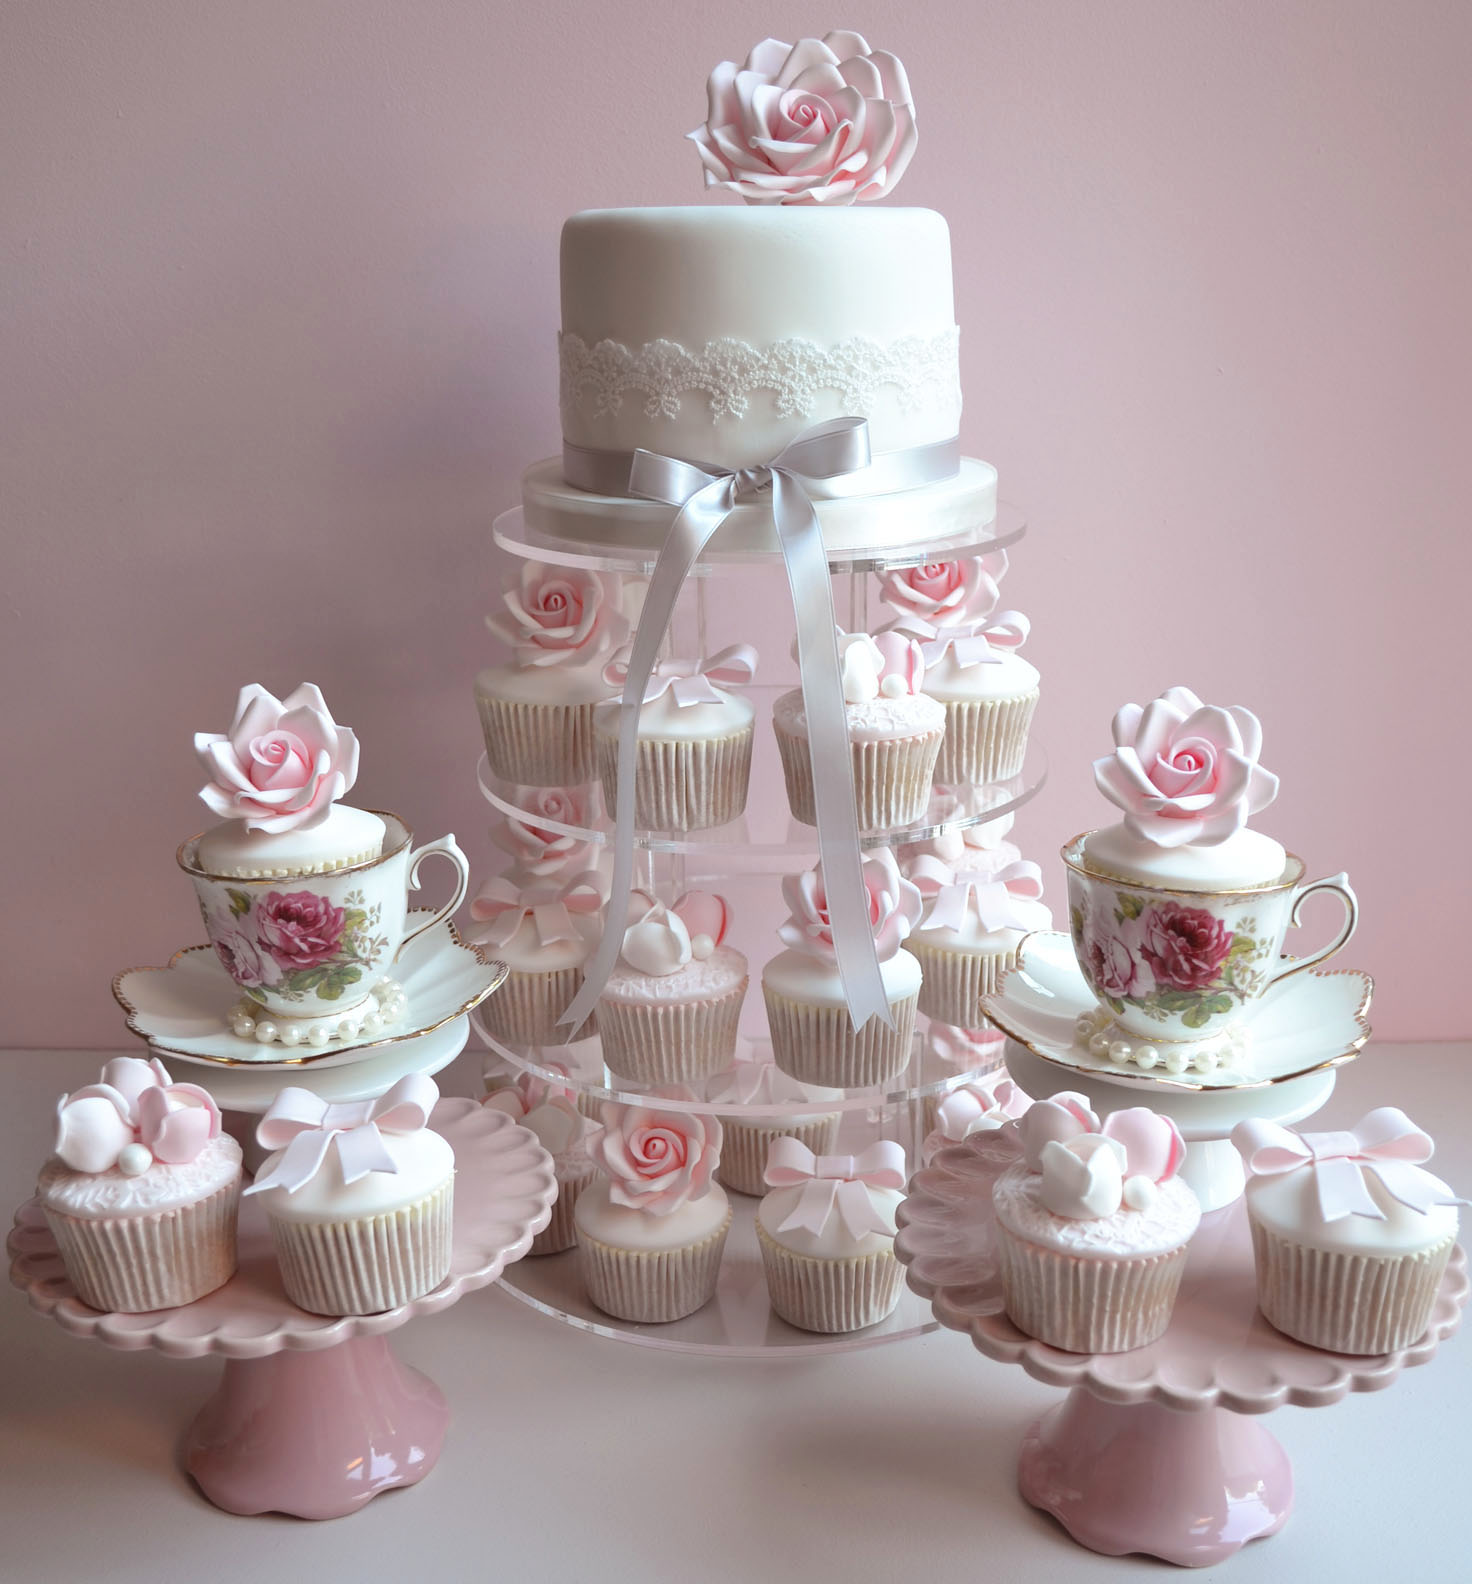 Cupcake Ideas For Wedding: Little Paper Cakes: Beautiful Vintage Wedding Cupcakes